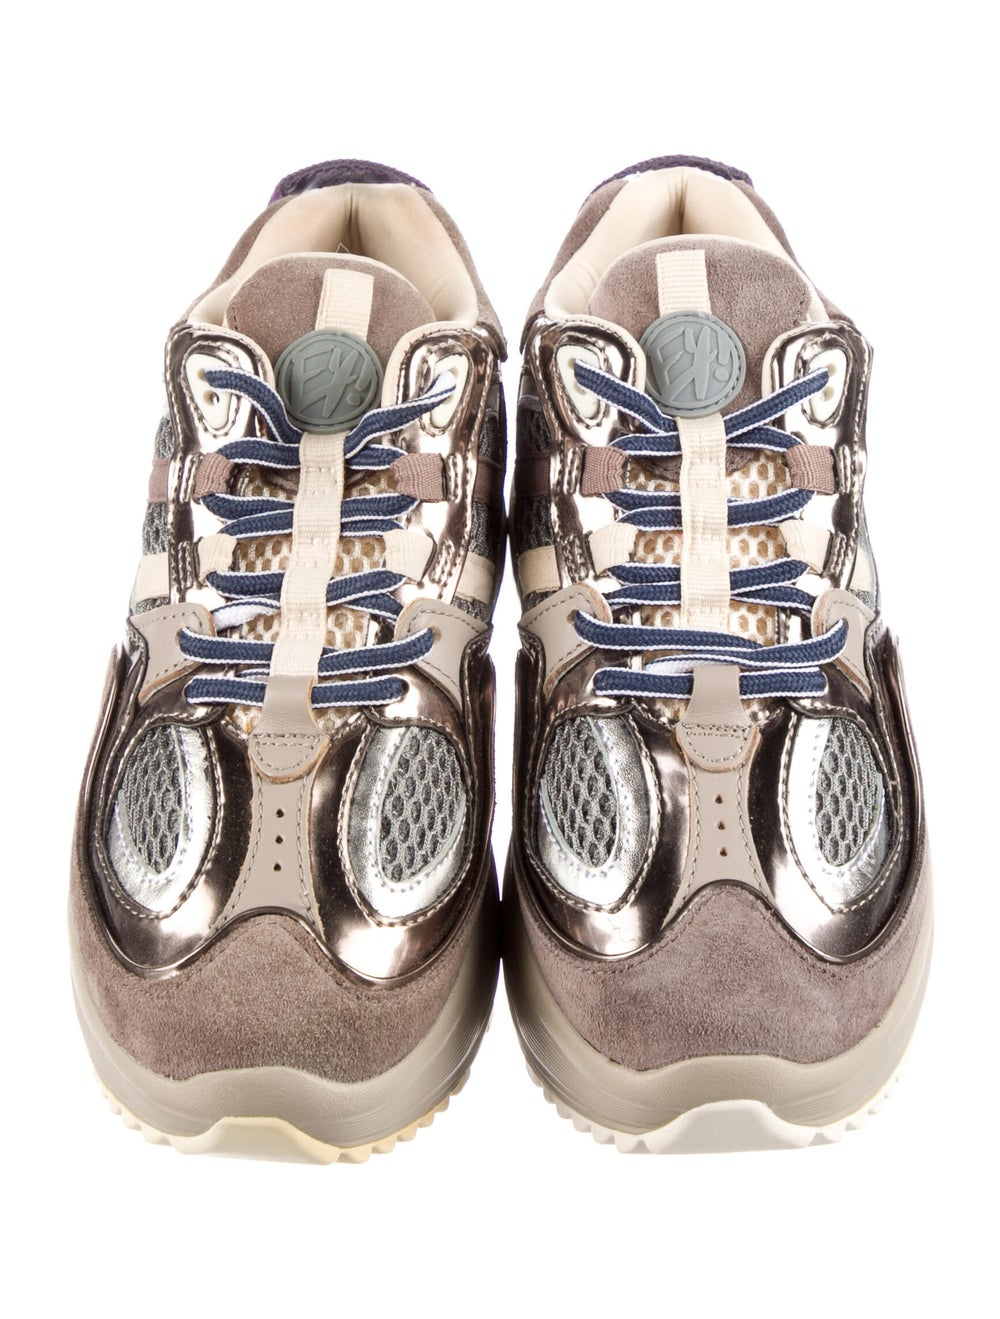 Eytys Jet Chunky Sneakers - image 3